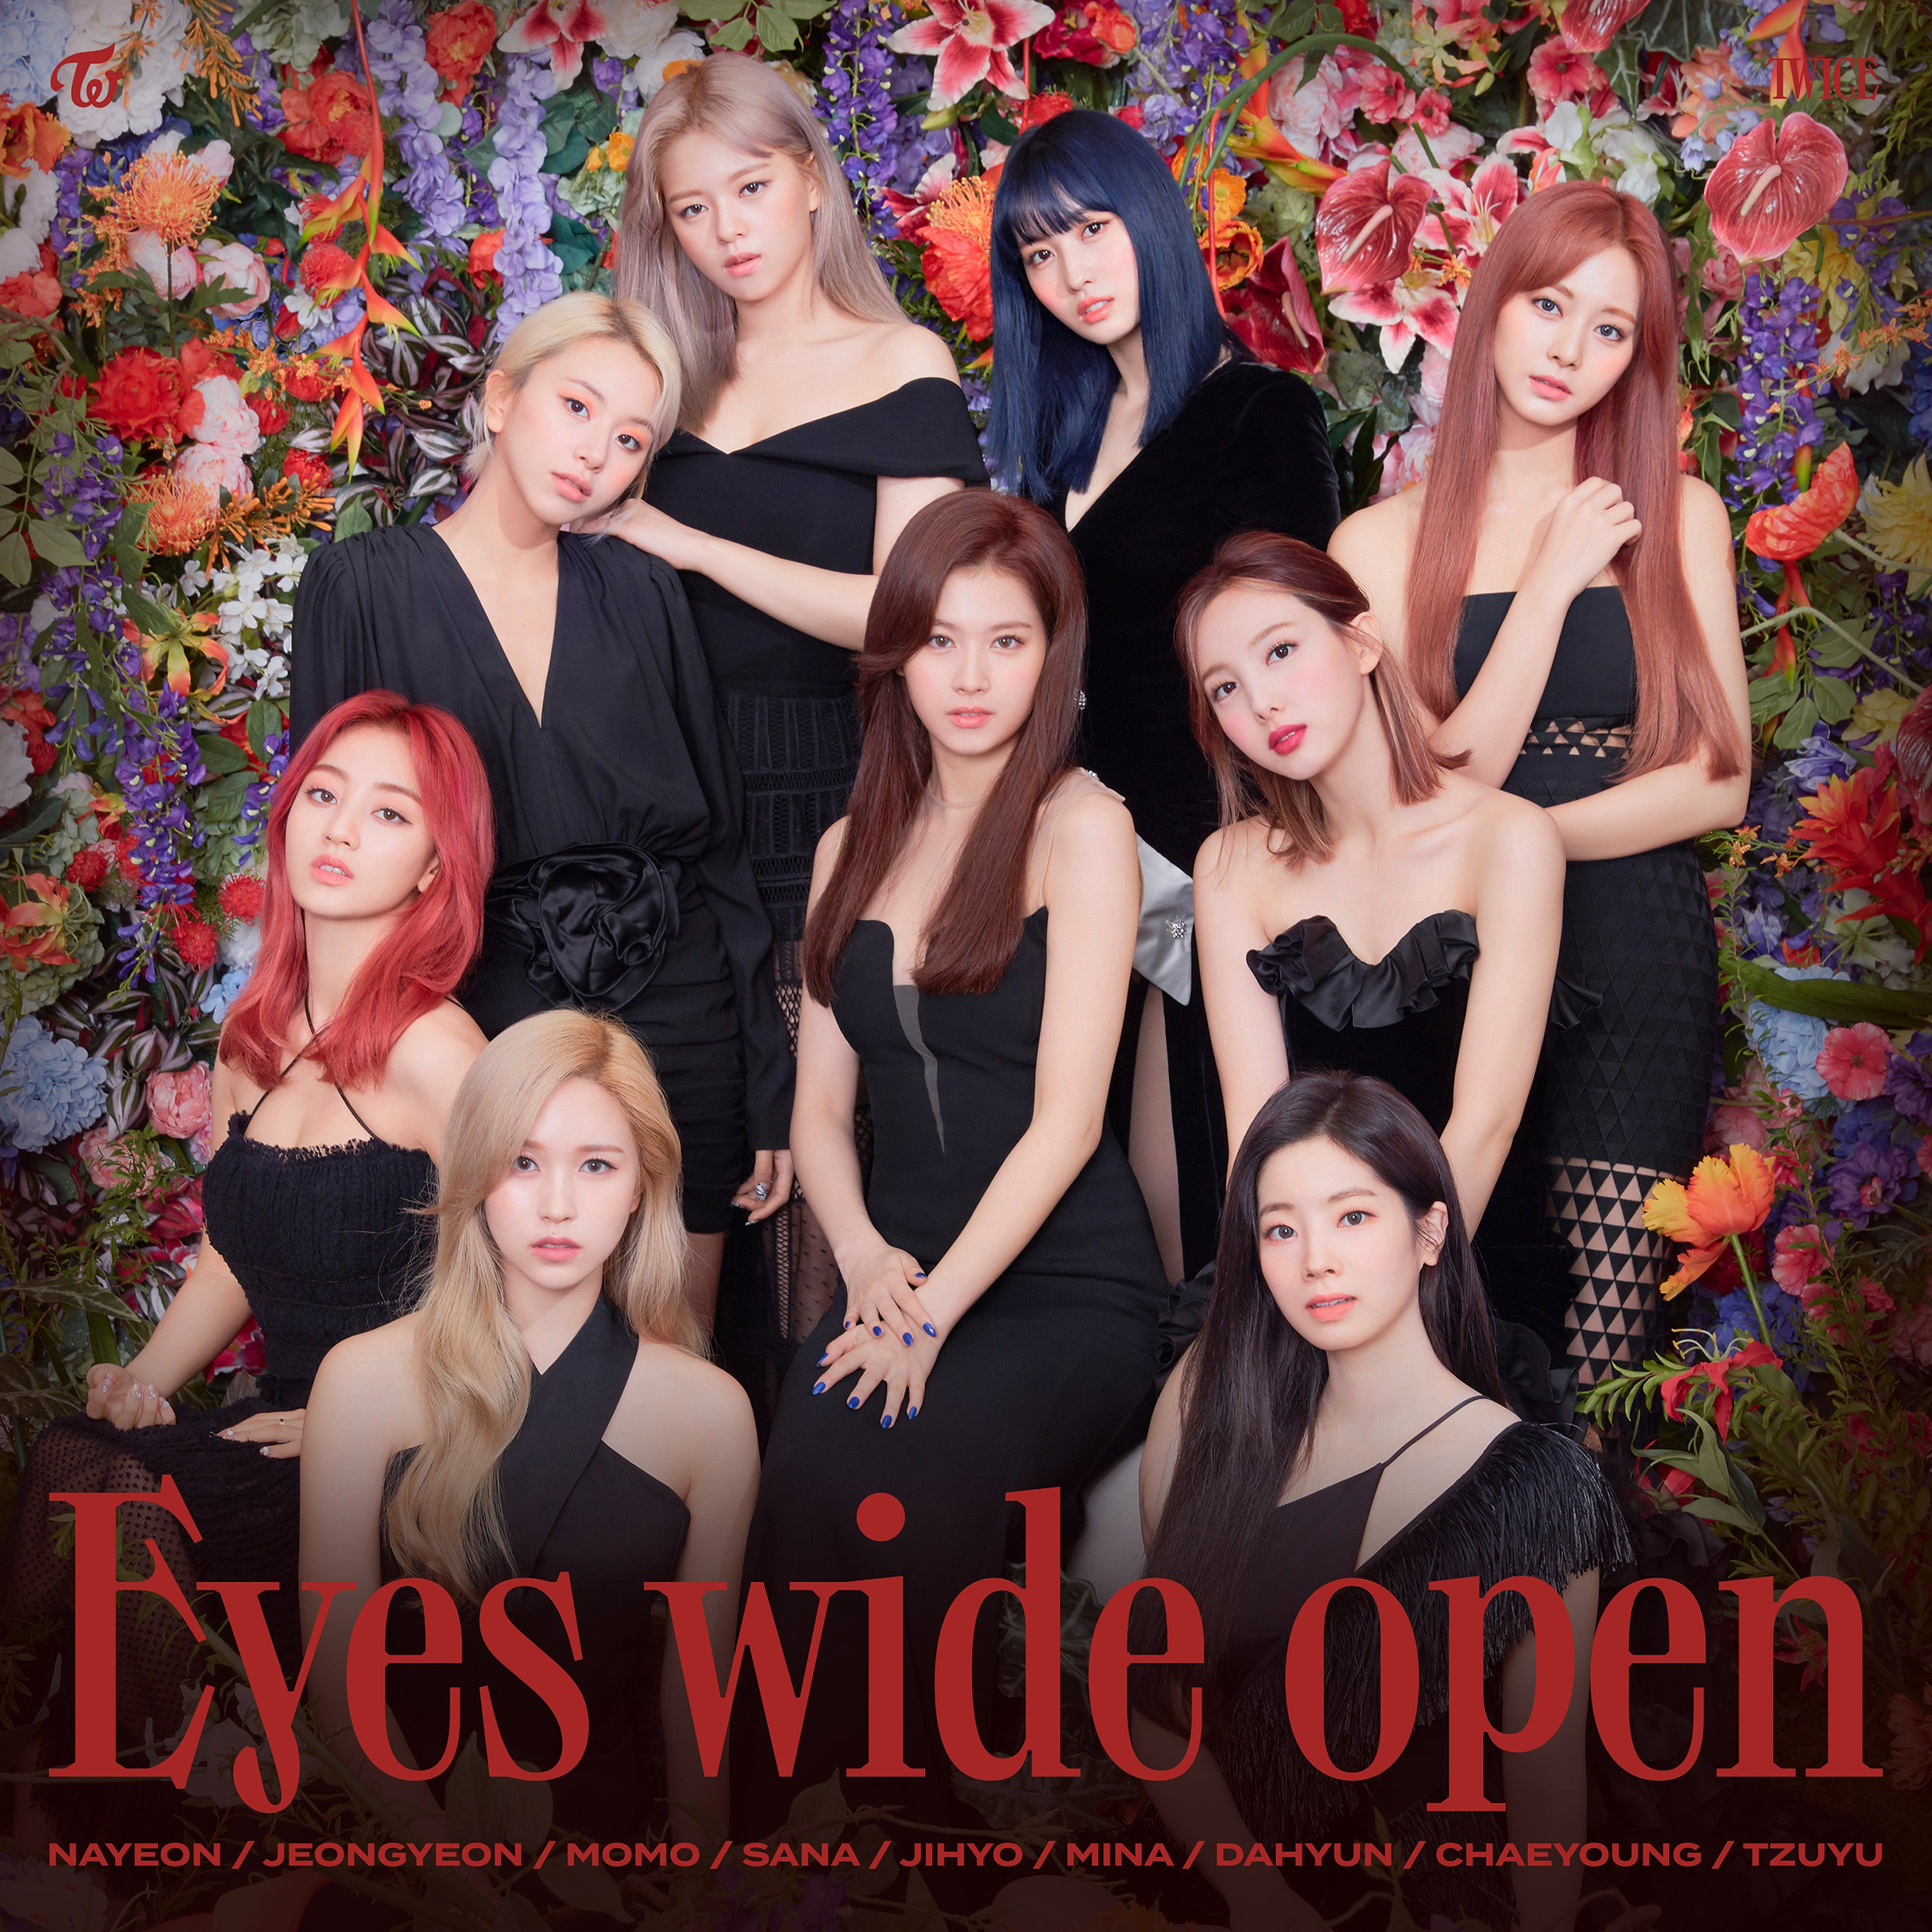 TWICE Eyes Wide Open digital album cover.png